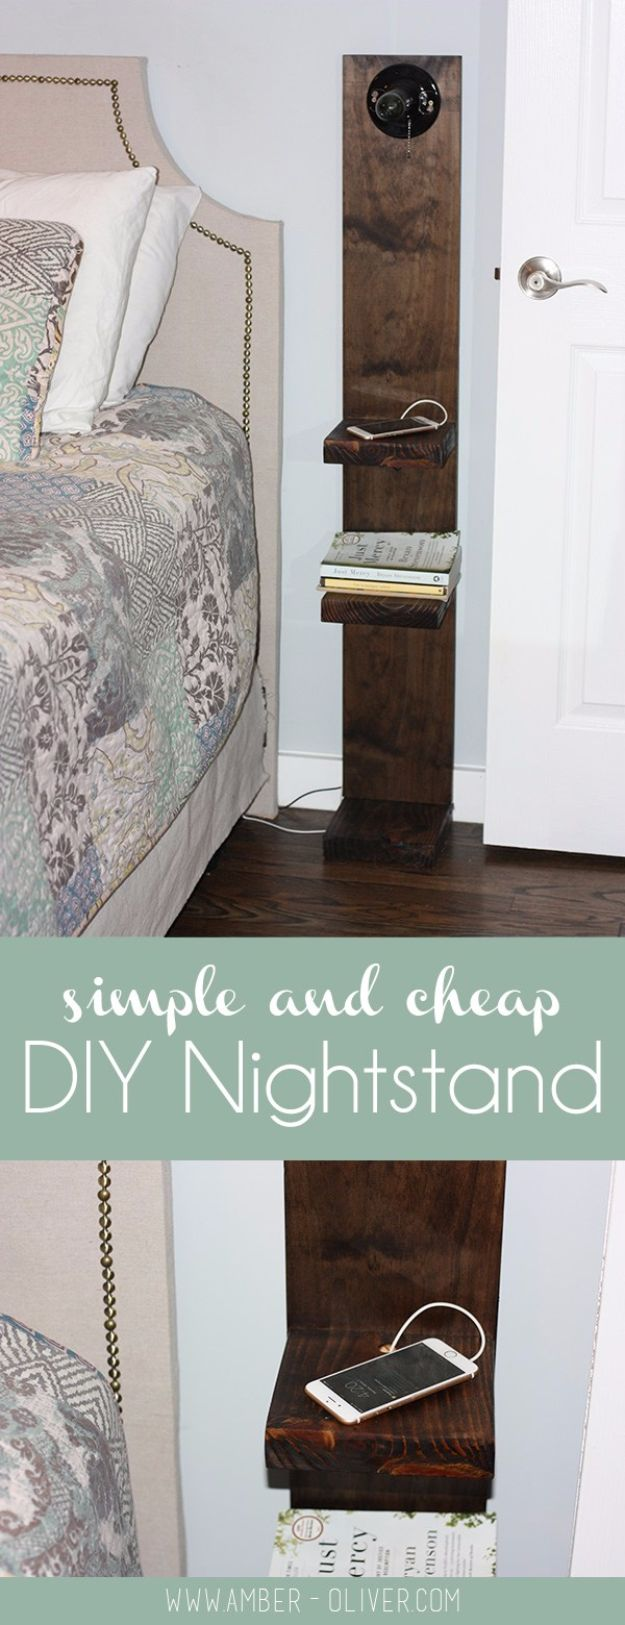 Diy Nightstand With Lighting